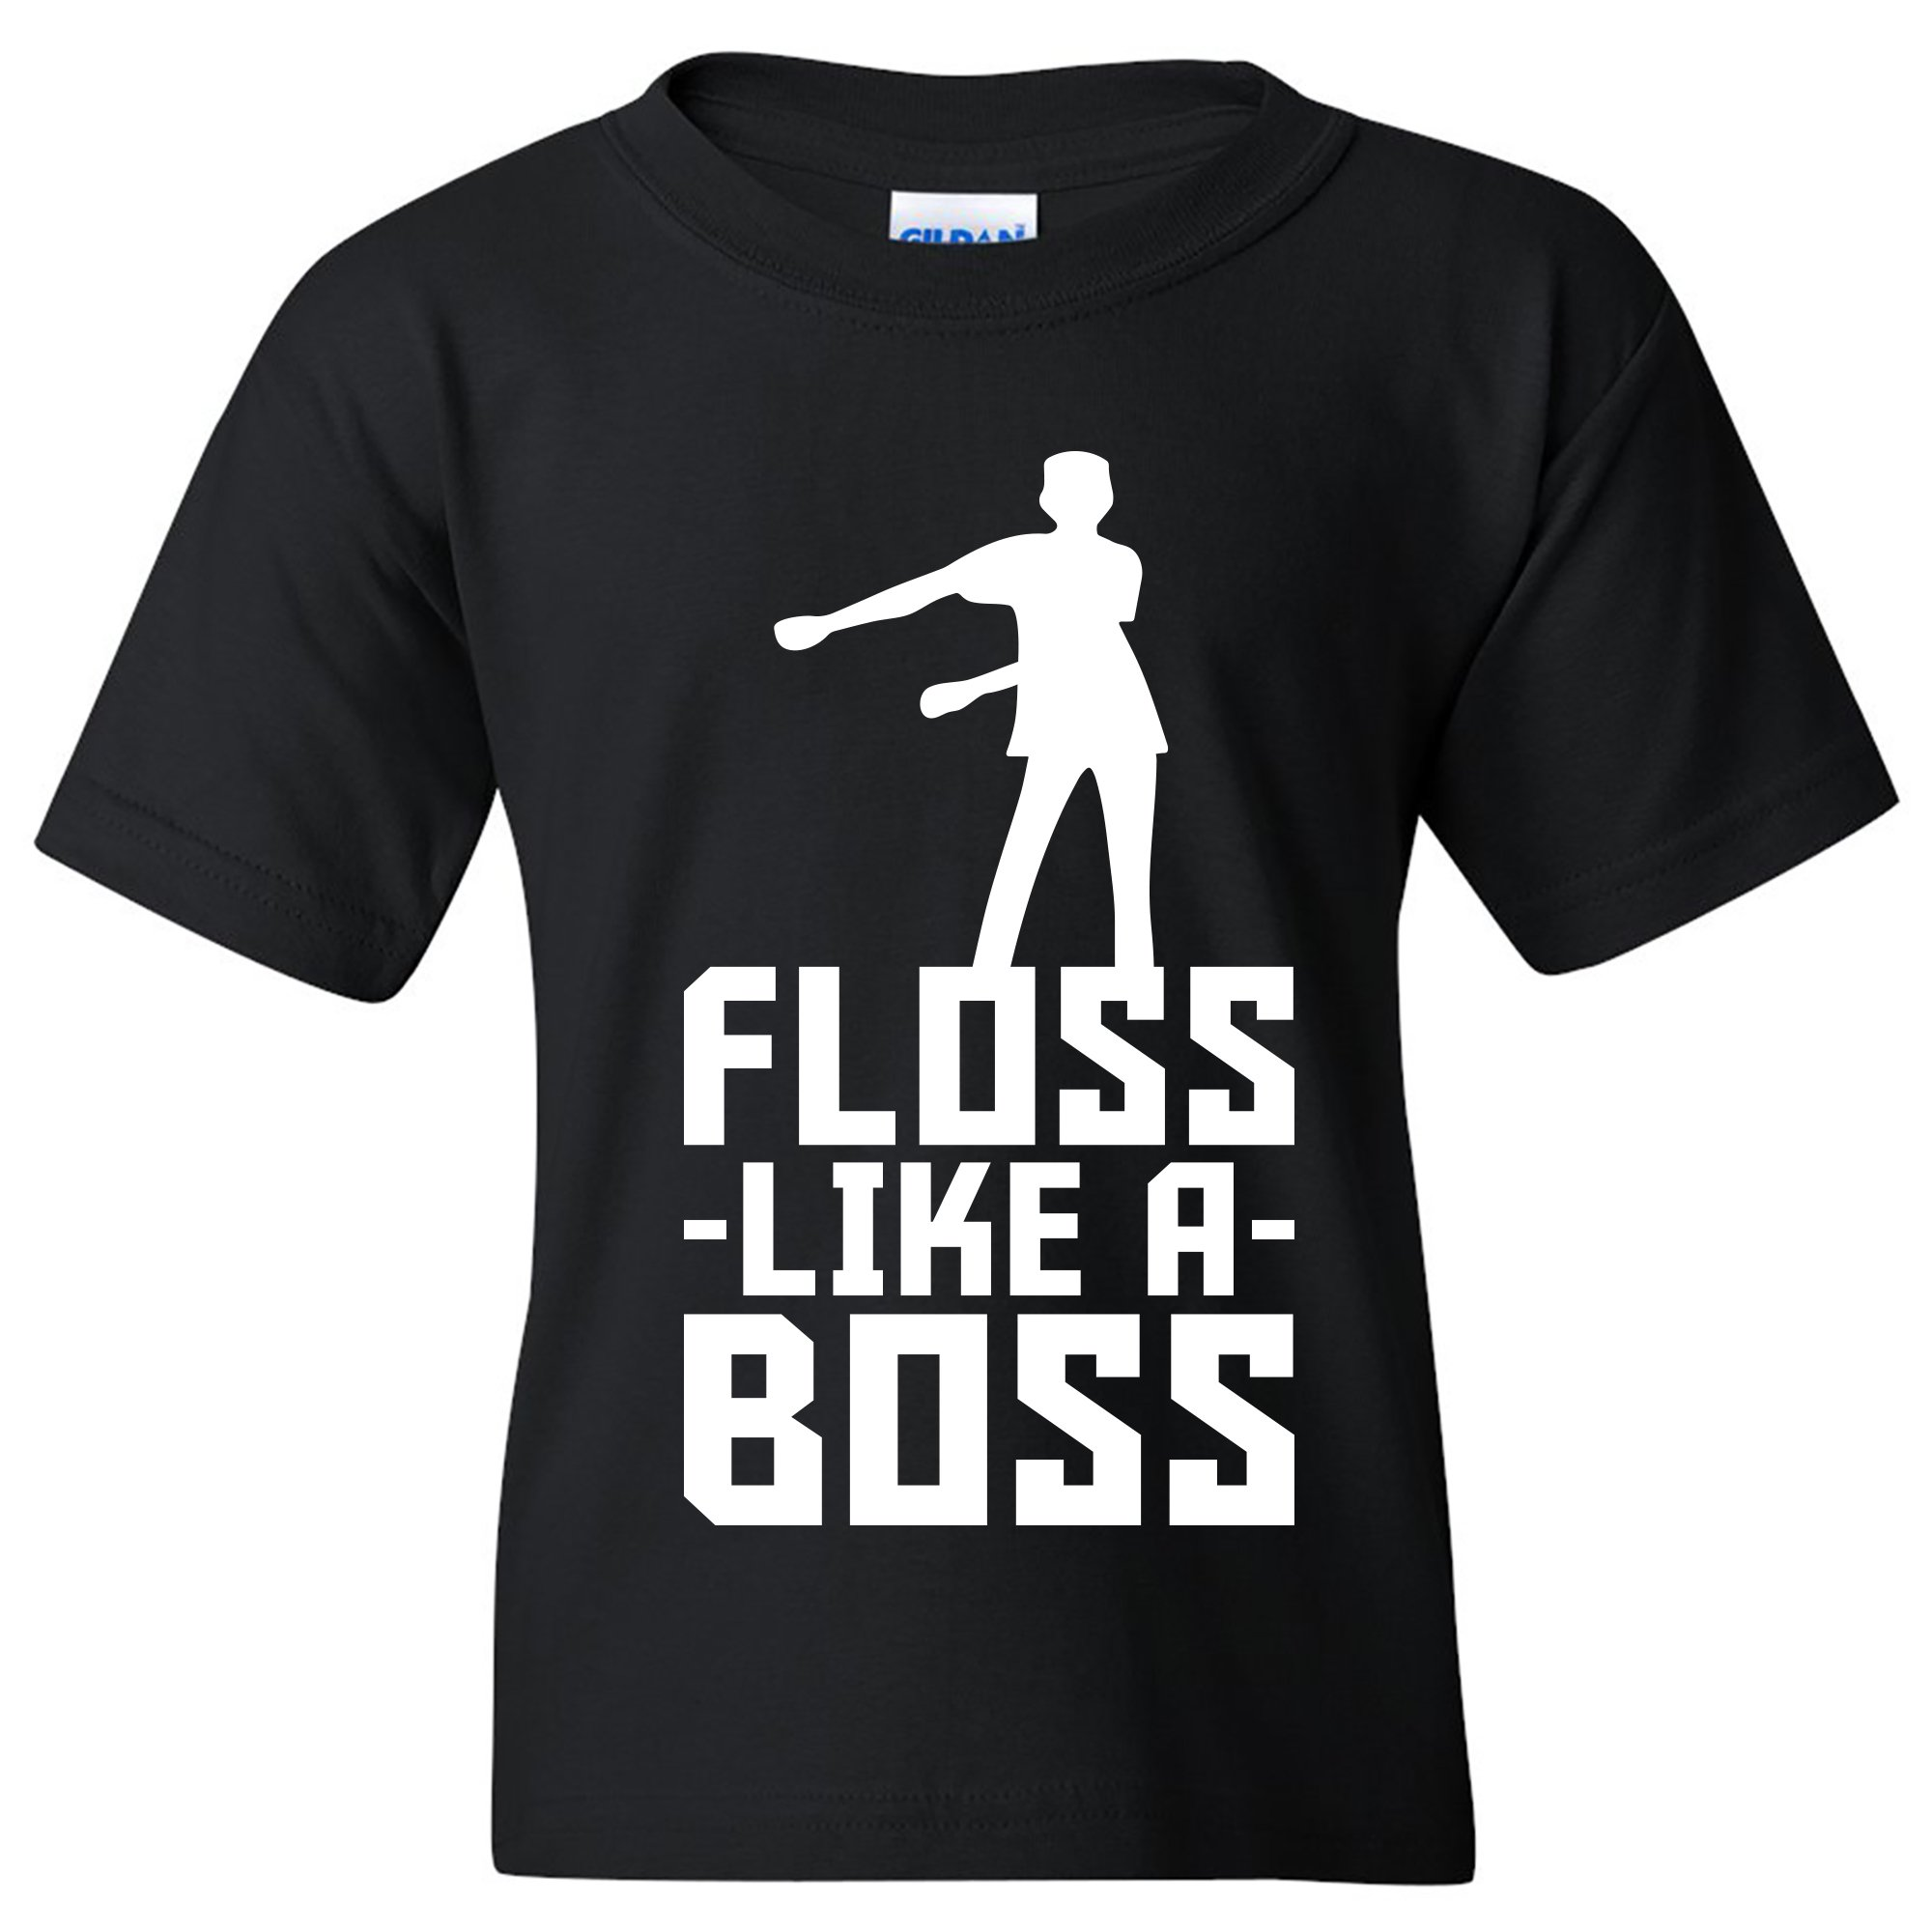 Floss Like A Boss - Back Pack Kid Flossin Dance Funny Emote Youth T Shirt - Medium - Black